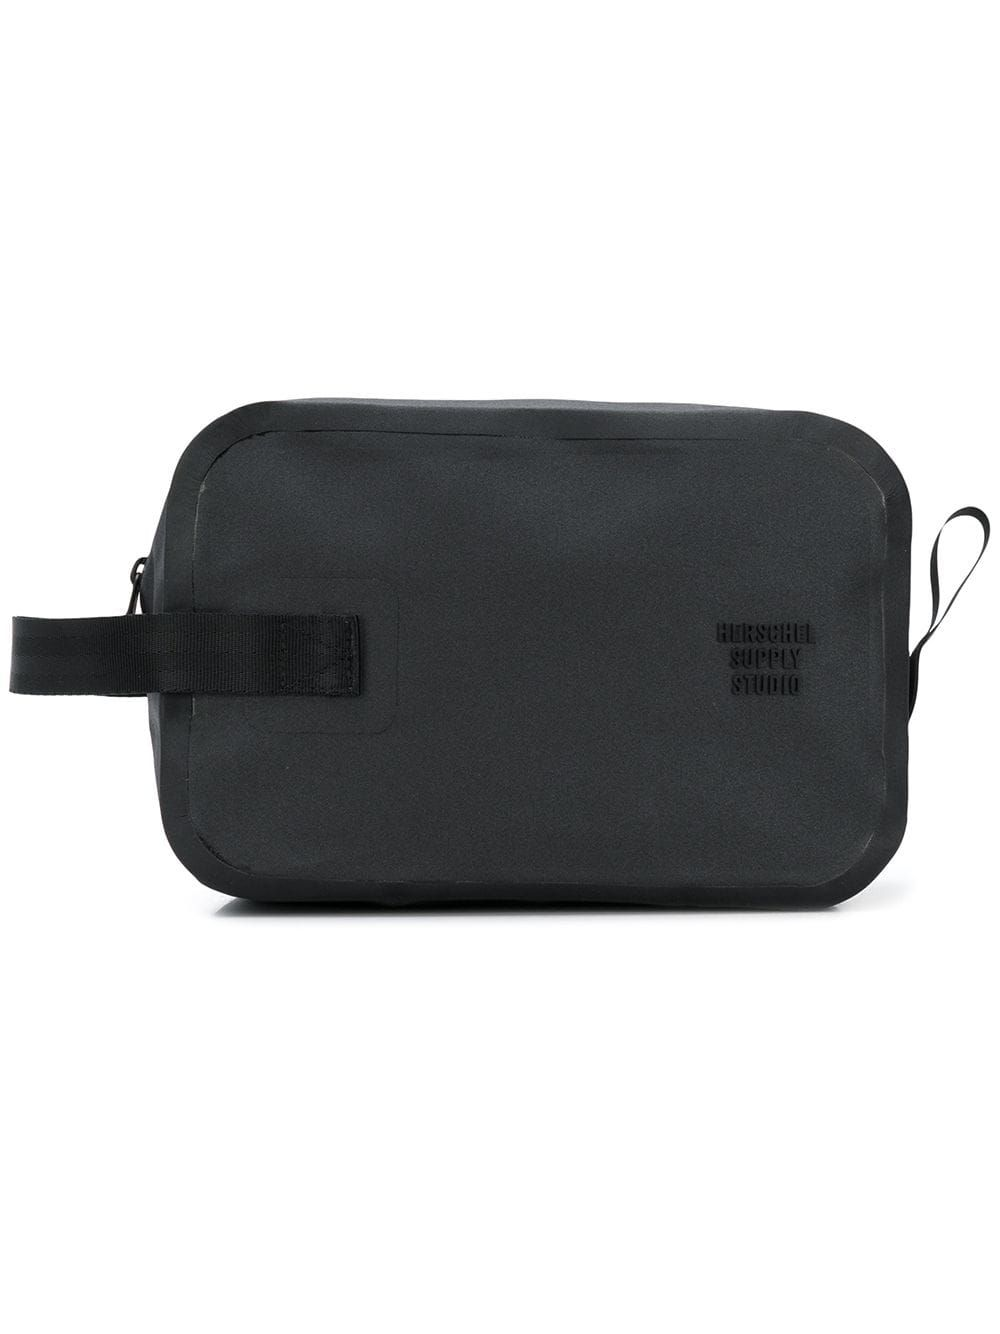 0b33fda8b794 HERSCHEL SUPPLY CO. HERSCHEL SUPPLY CO. TOILETRY BAG - BLACK.   herschelsupplyco.